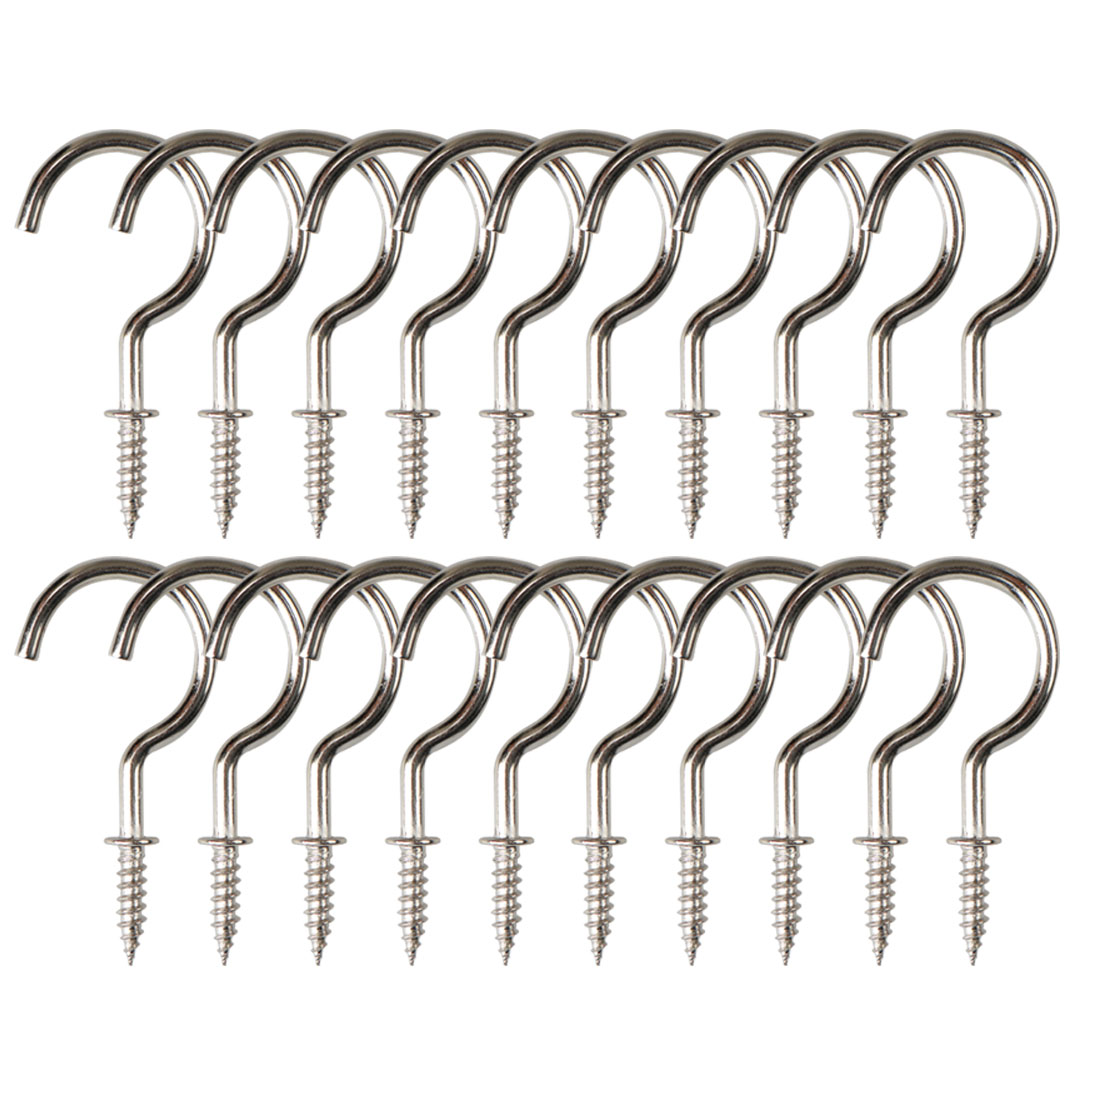 20pcs Cup Ceiling Hooks 1-1/4 Inch Nickel Plating Metal Screw for Home Cups